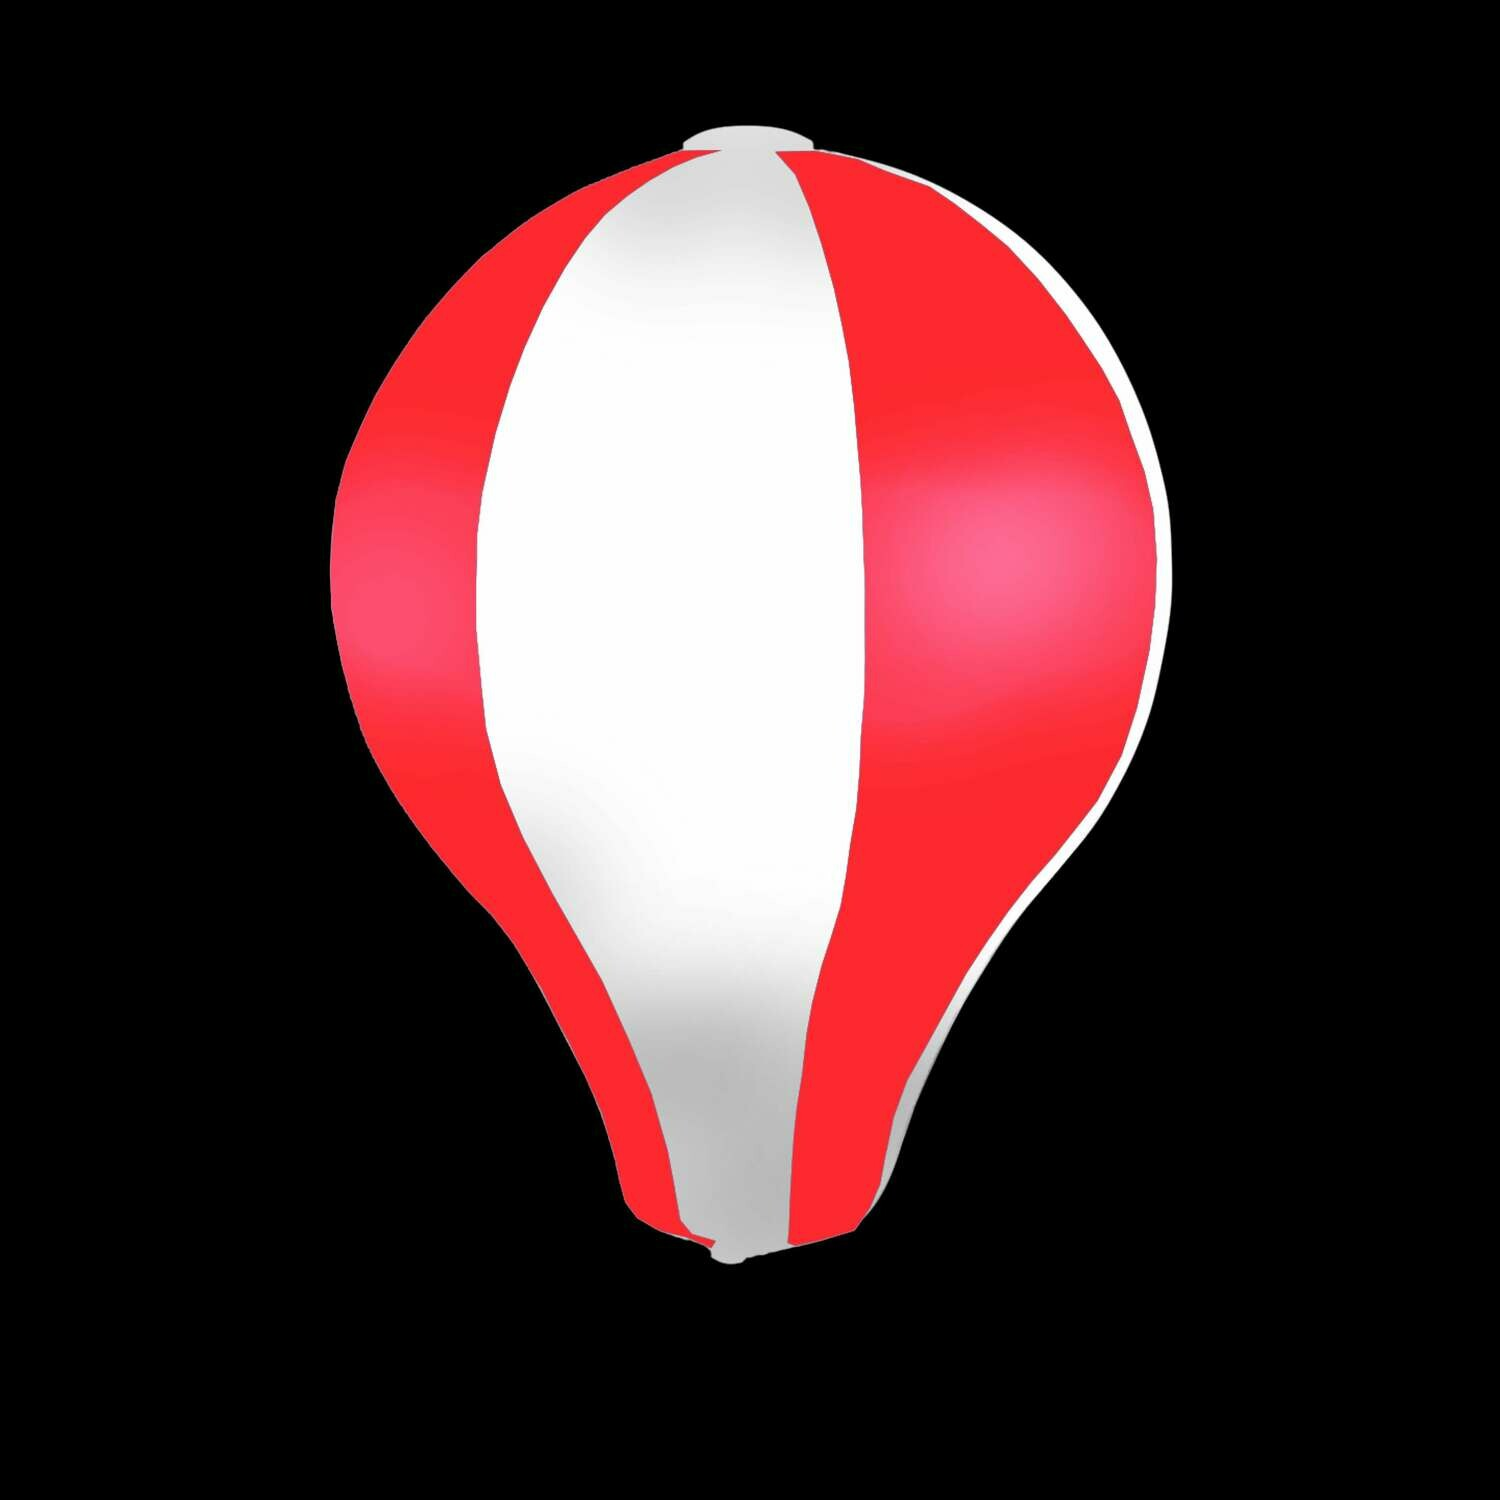 Hanging Inflatable Hot Air Balloon 6.4ft/195cm x 8.5ft/260cm